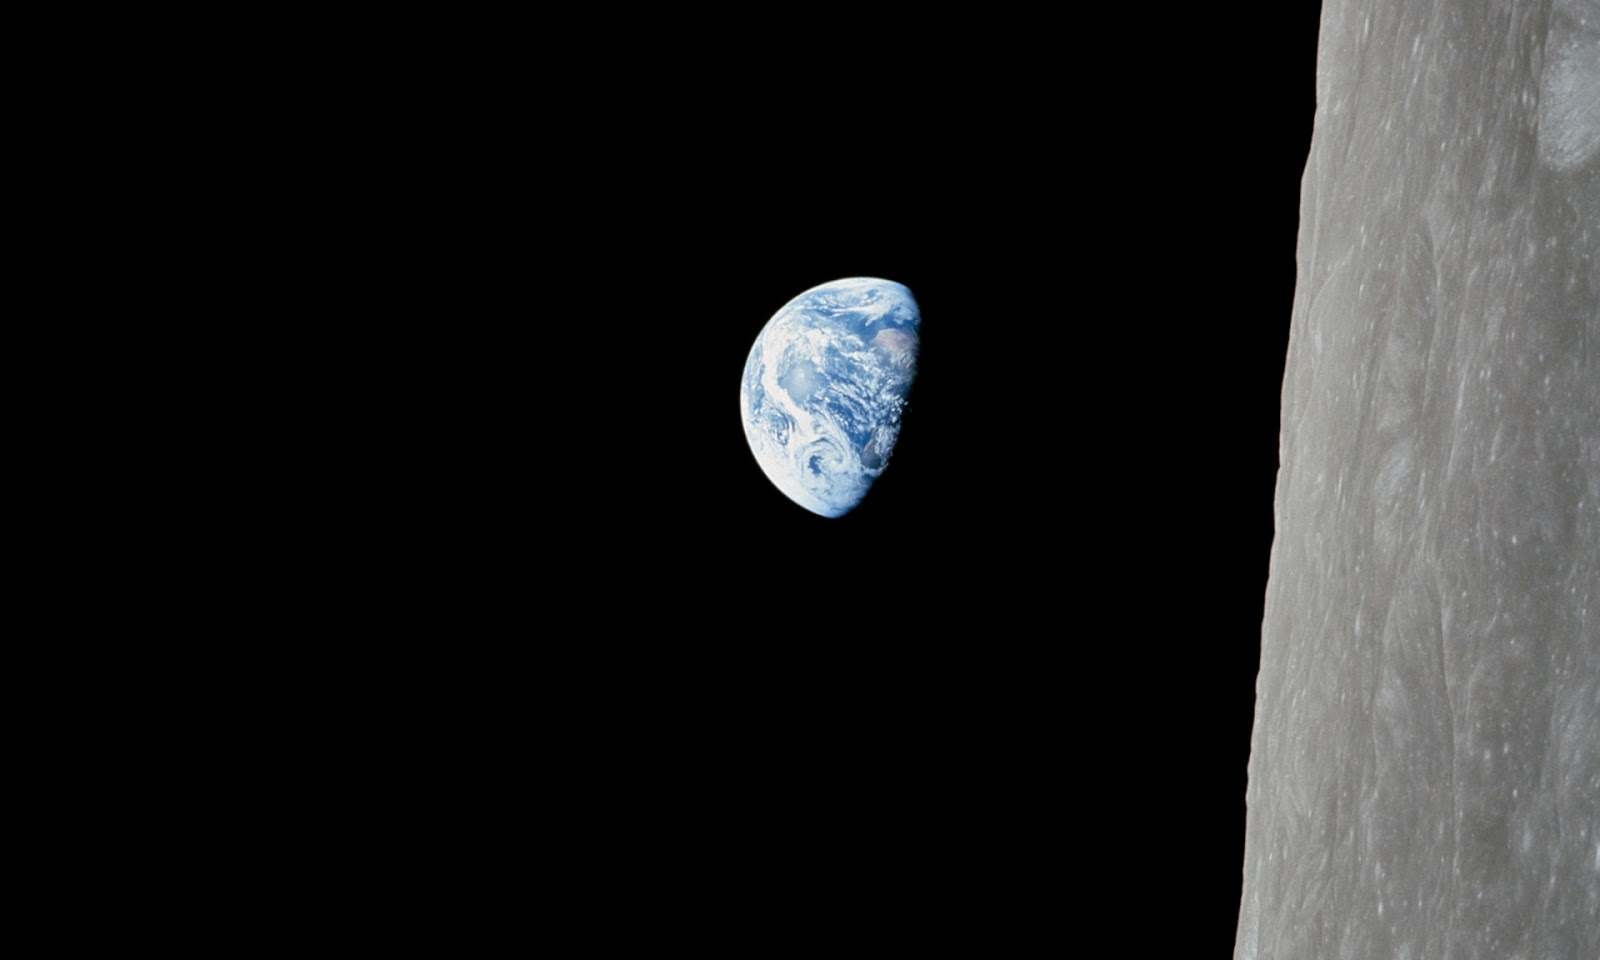 Photograph, Bill Anders/Appolo 8: The 'blue, beautiful world' seen from space.